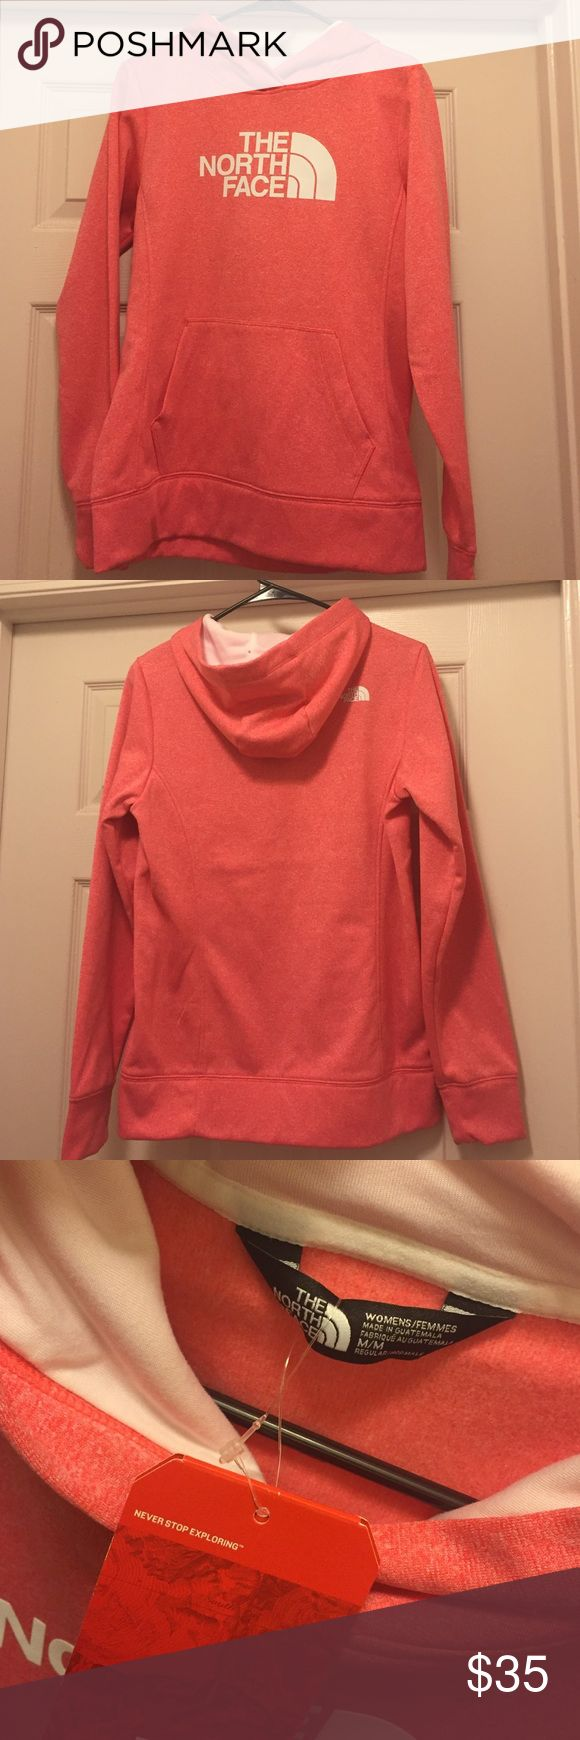 Women's North Face pullover hoodie. NWT. Med. North Face pullover hoodie. Pink/coral color with white logo. NWT. Size medium. Super comfy! It was a gift and doesn't fit me. The North Face Tops Sweatshirts & Hoodies